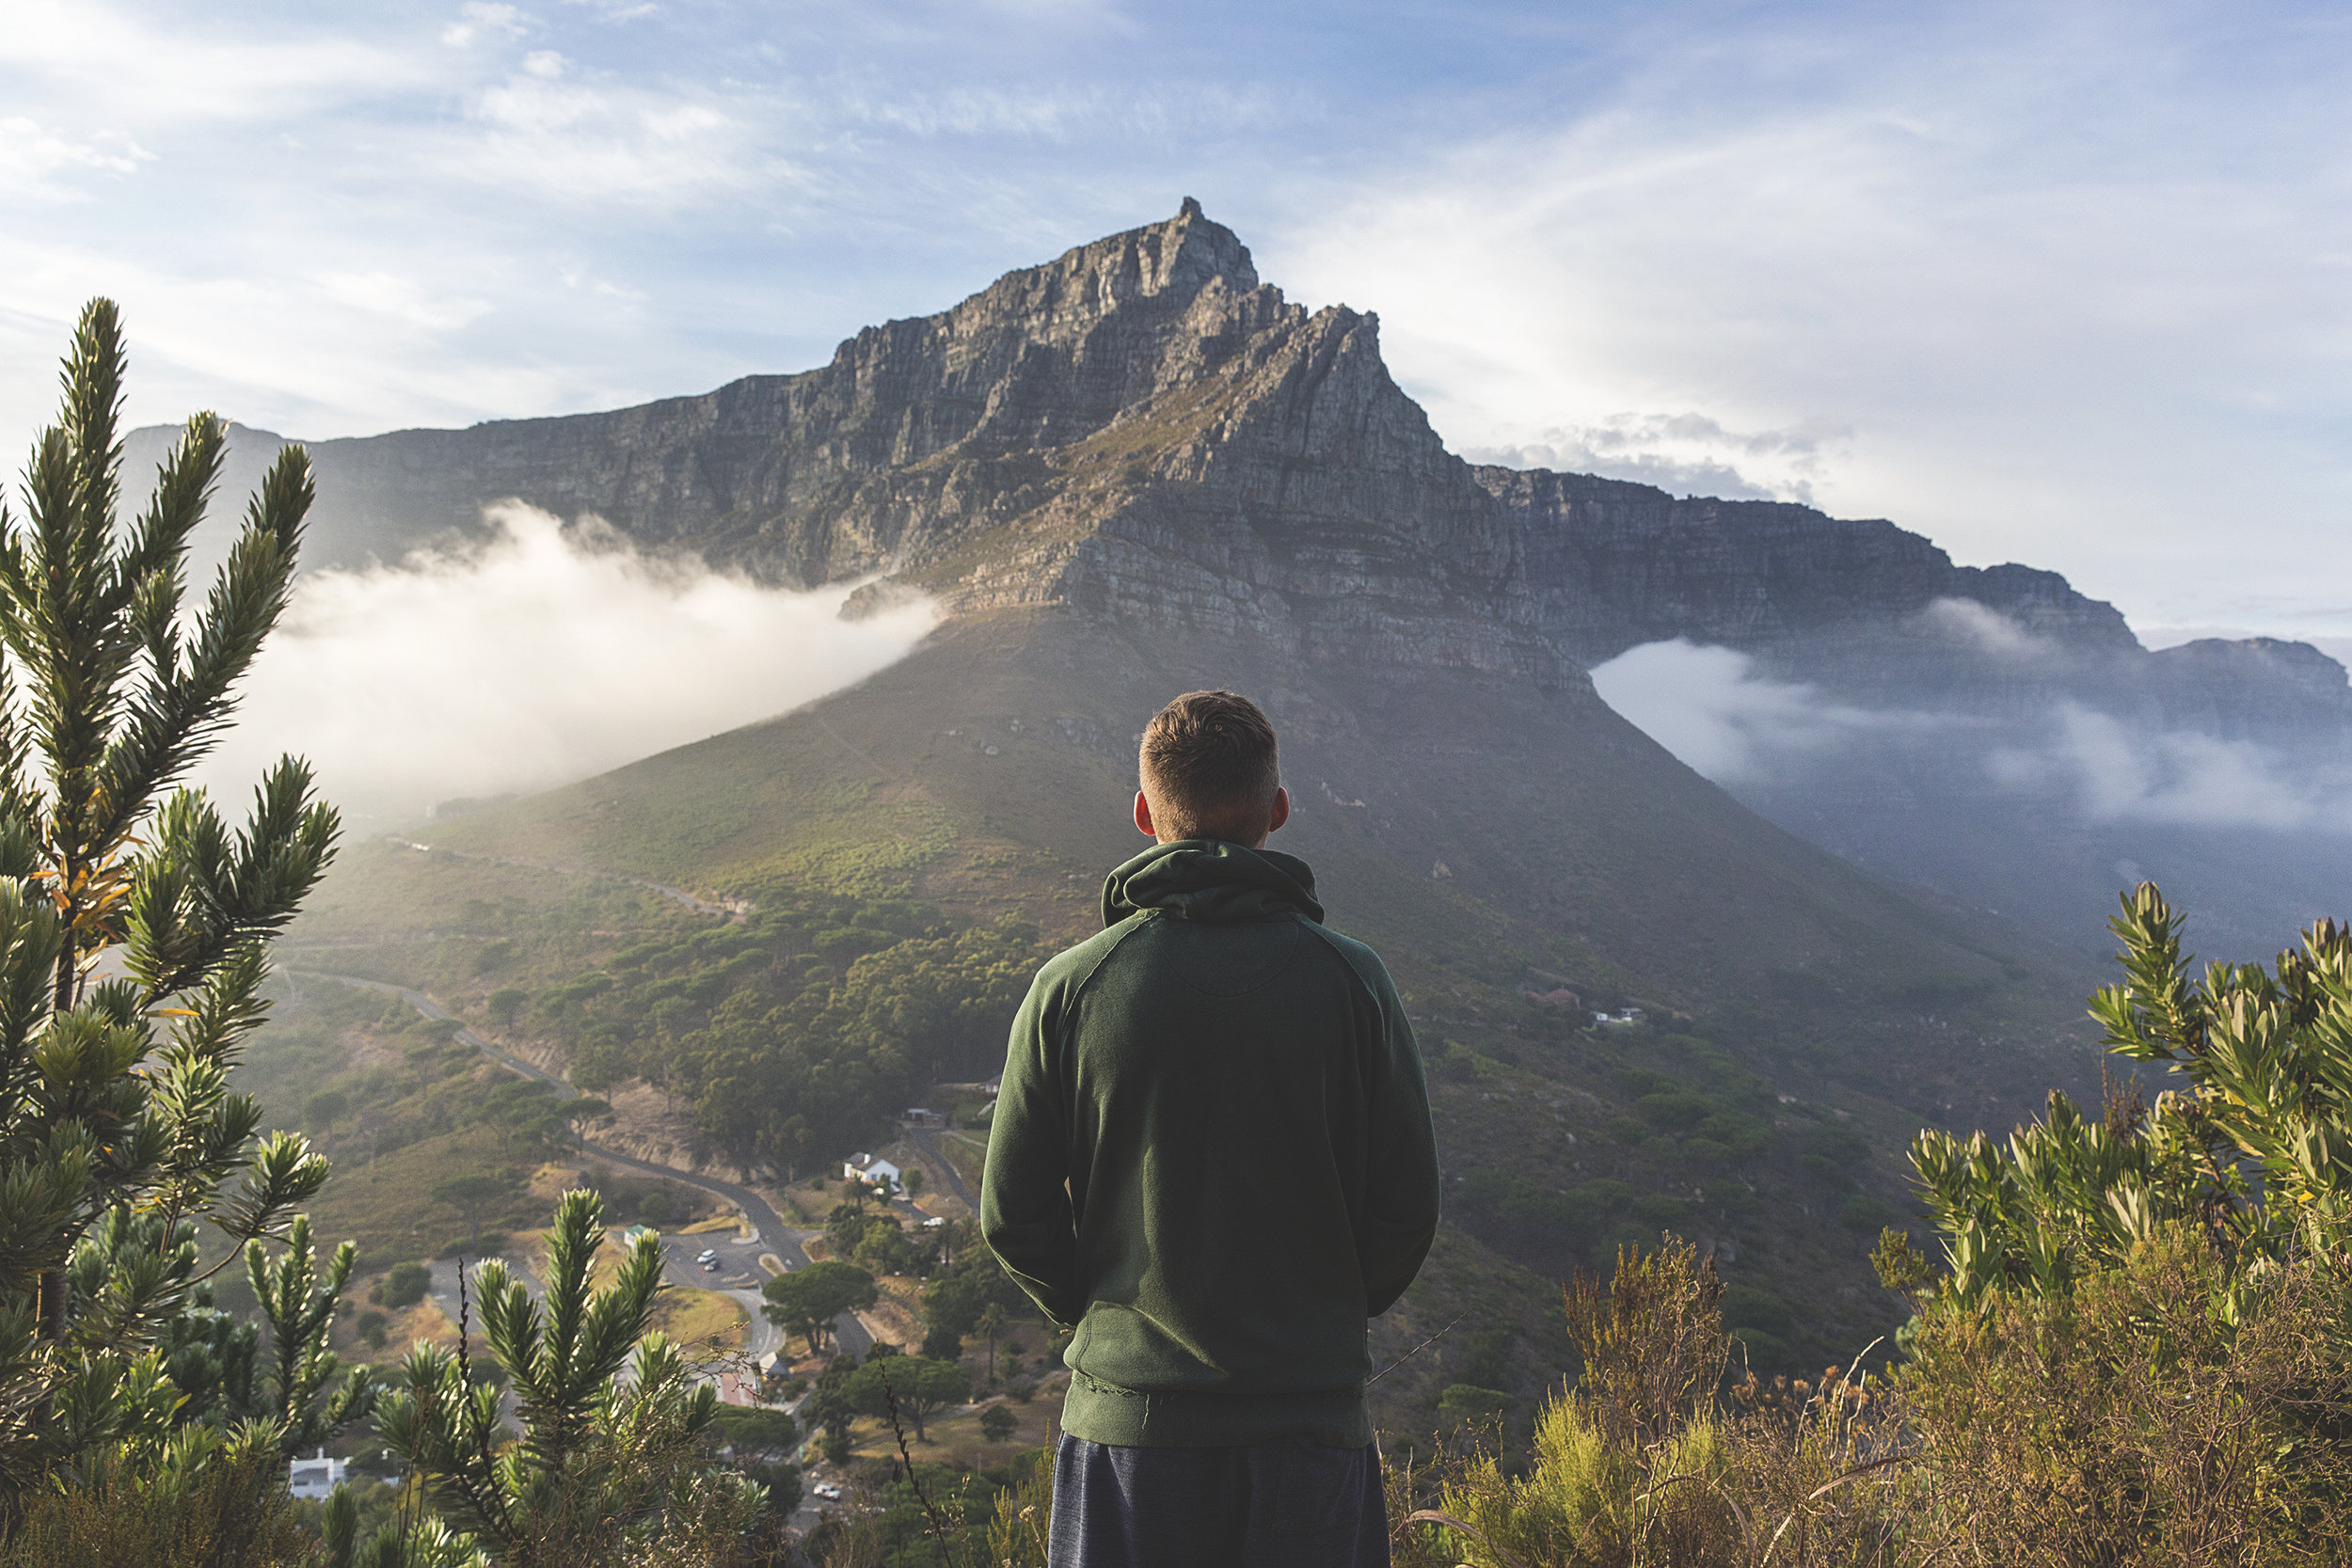 top 5 hiking trails - Tug on those hiking boots and follow us on some of the many amazing hiking trails spread across Cape Town and the surrounding areas